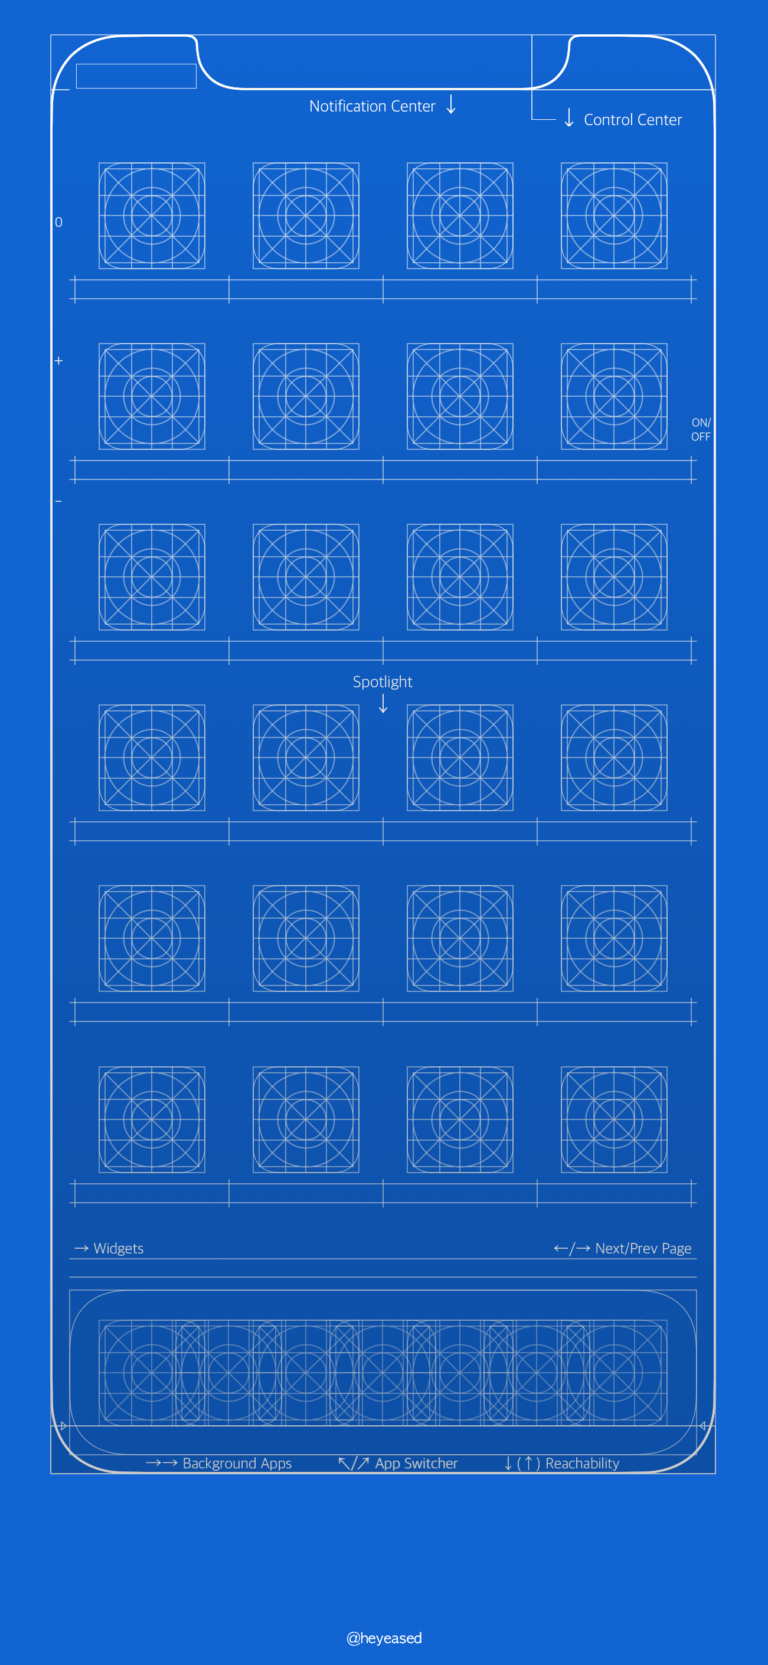 Free downloadnew designed blueprint wallpaper for iphone x and download the right unlock screen free downloadnew designed blueprint wallpaper for iphone malvernweather Gallery